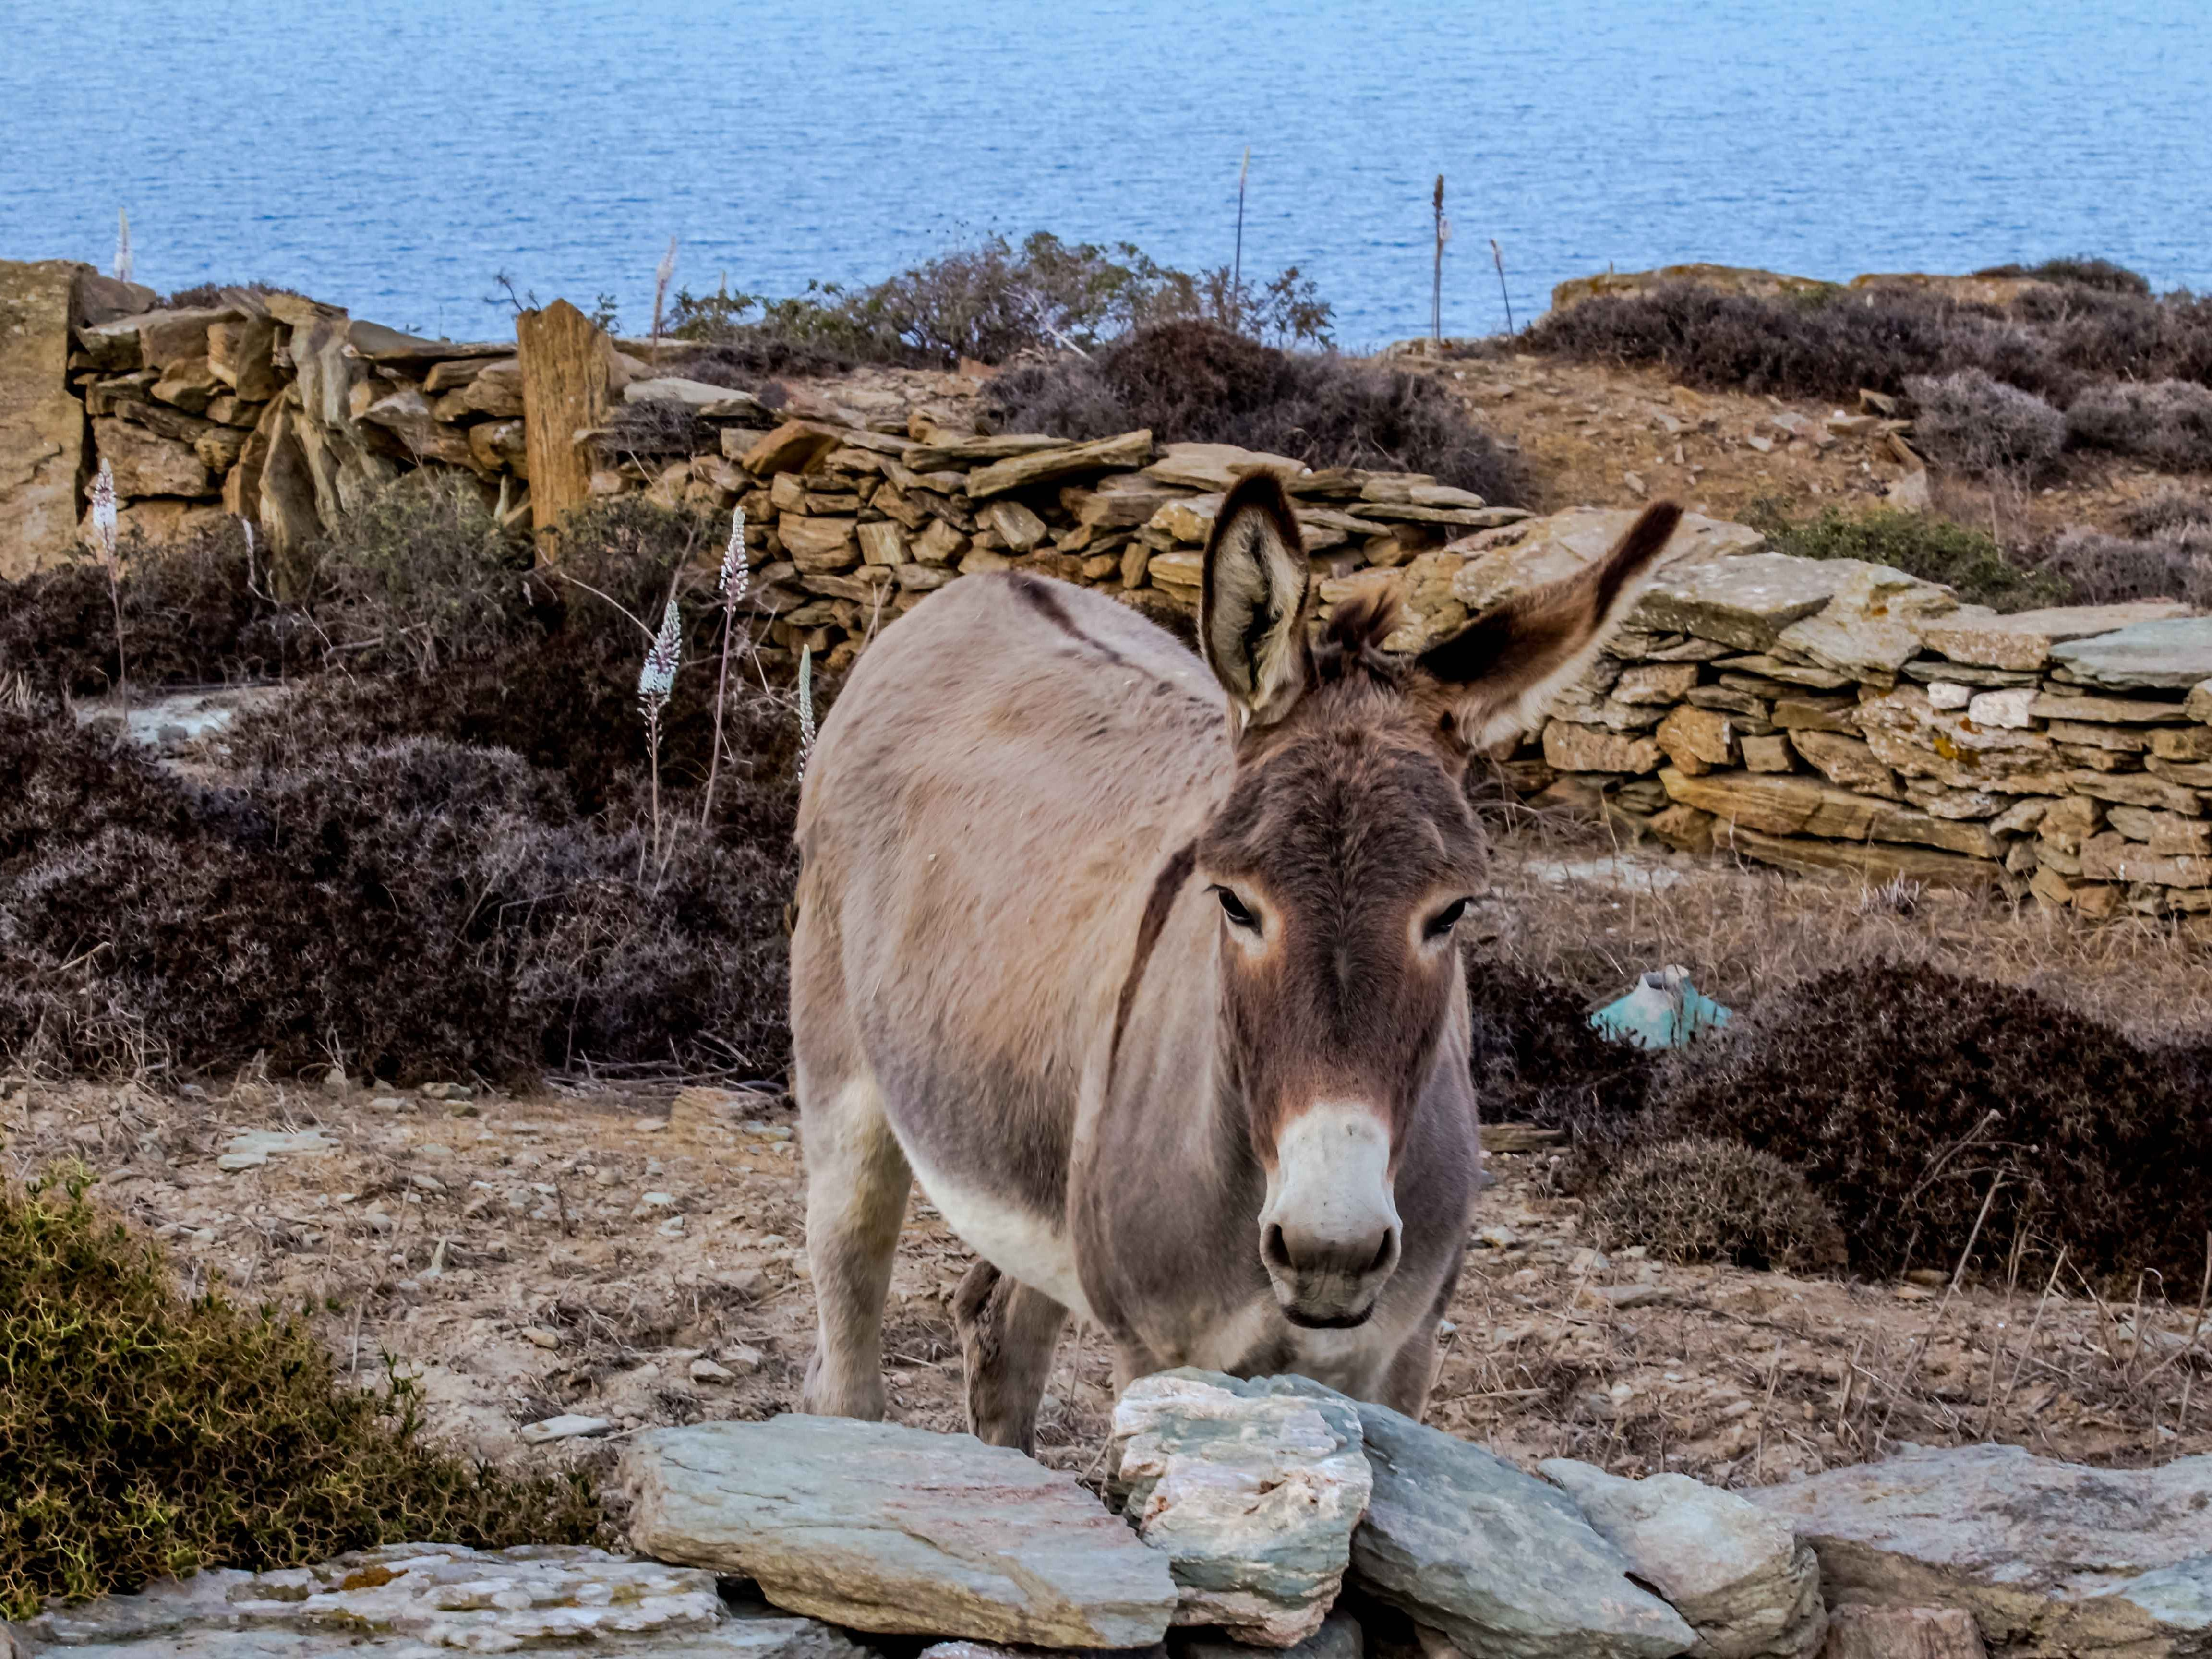 Folegandros, as is the case in most of the Cyclades, is home to many goats, cats and friendly and gentle donkeys who come by to greet visitors in the hope of a treat.